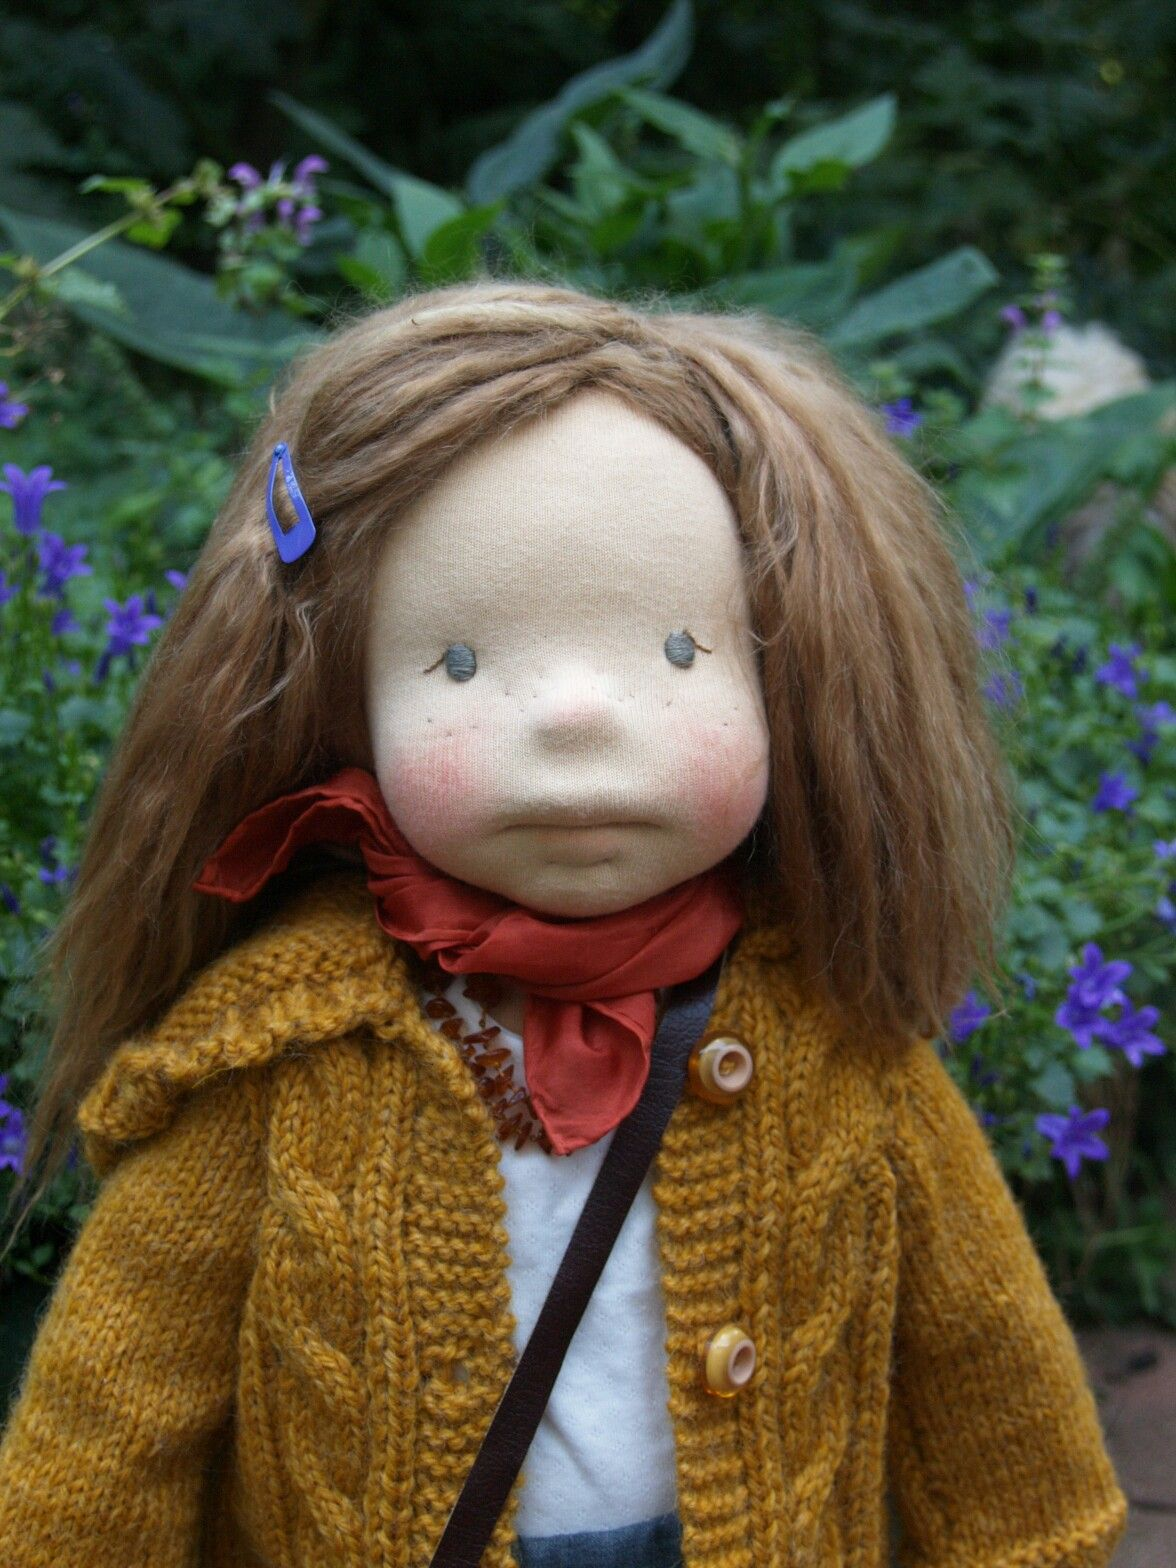 My Hermione made by Lalinda-dolls